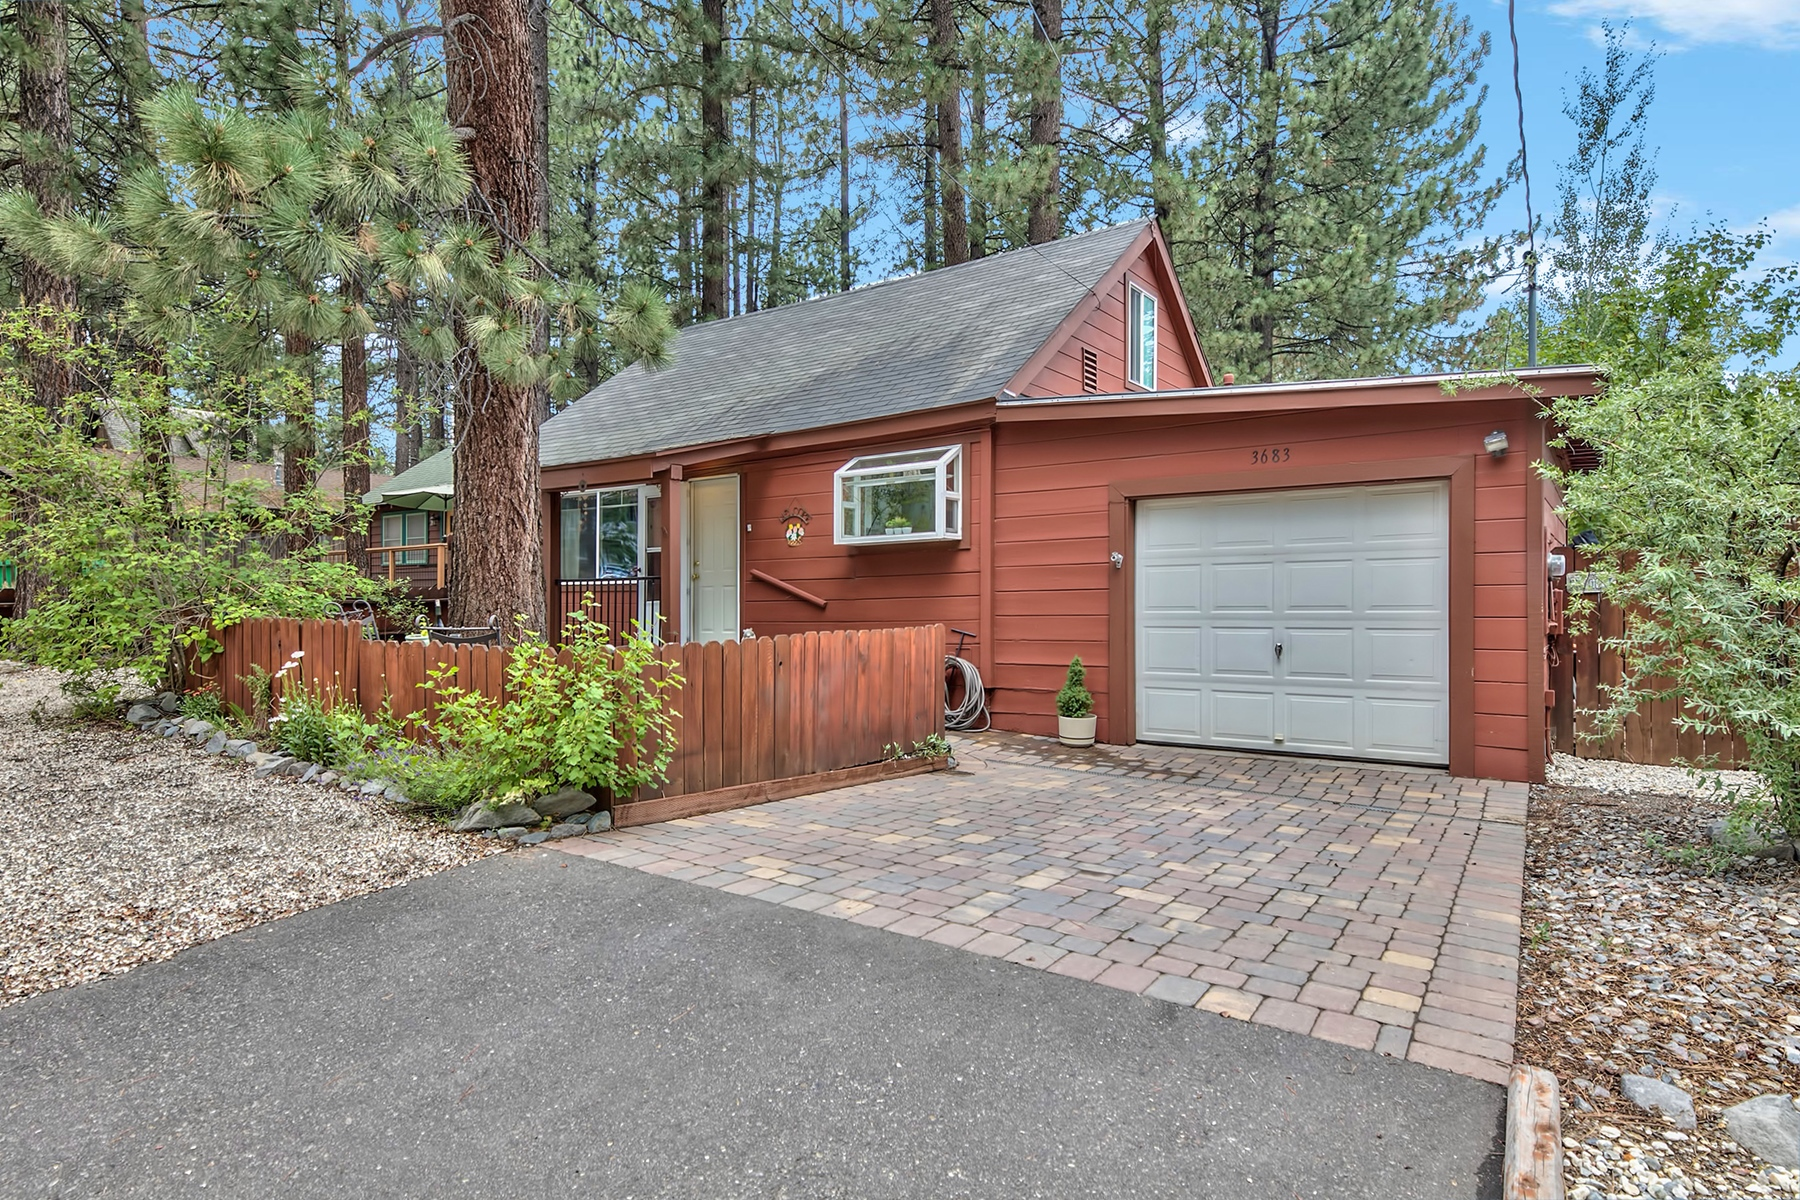 Property for Active at 3683 Larch Ave, South Lake Tahoe CA 96150 3683 Larch Avenue South Lake Tahoe, California 96150 United States